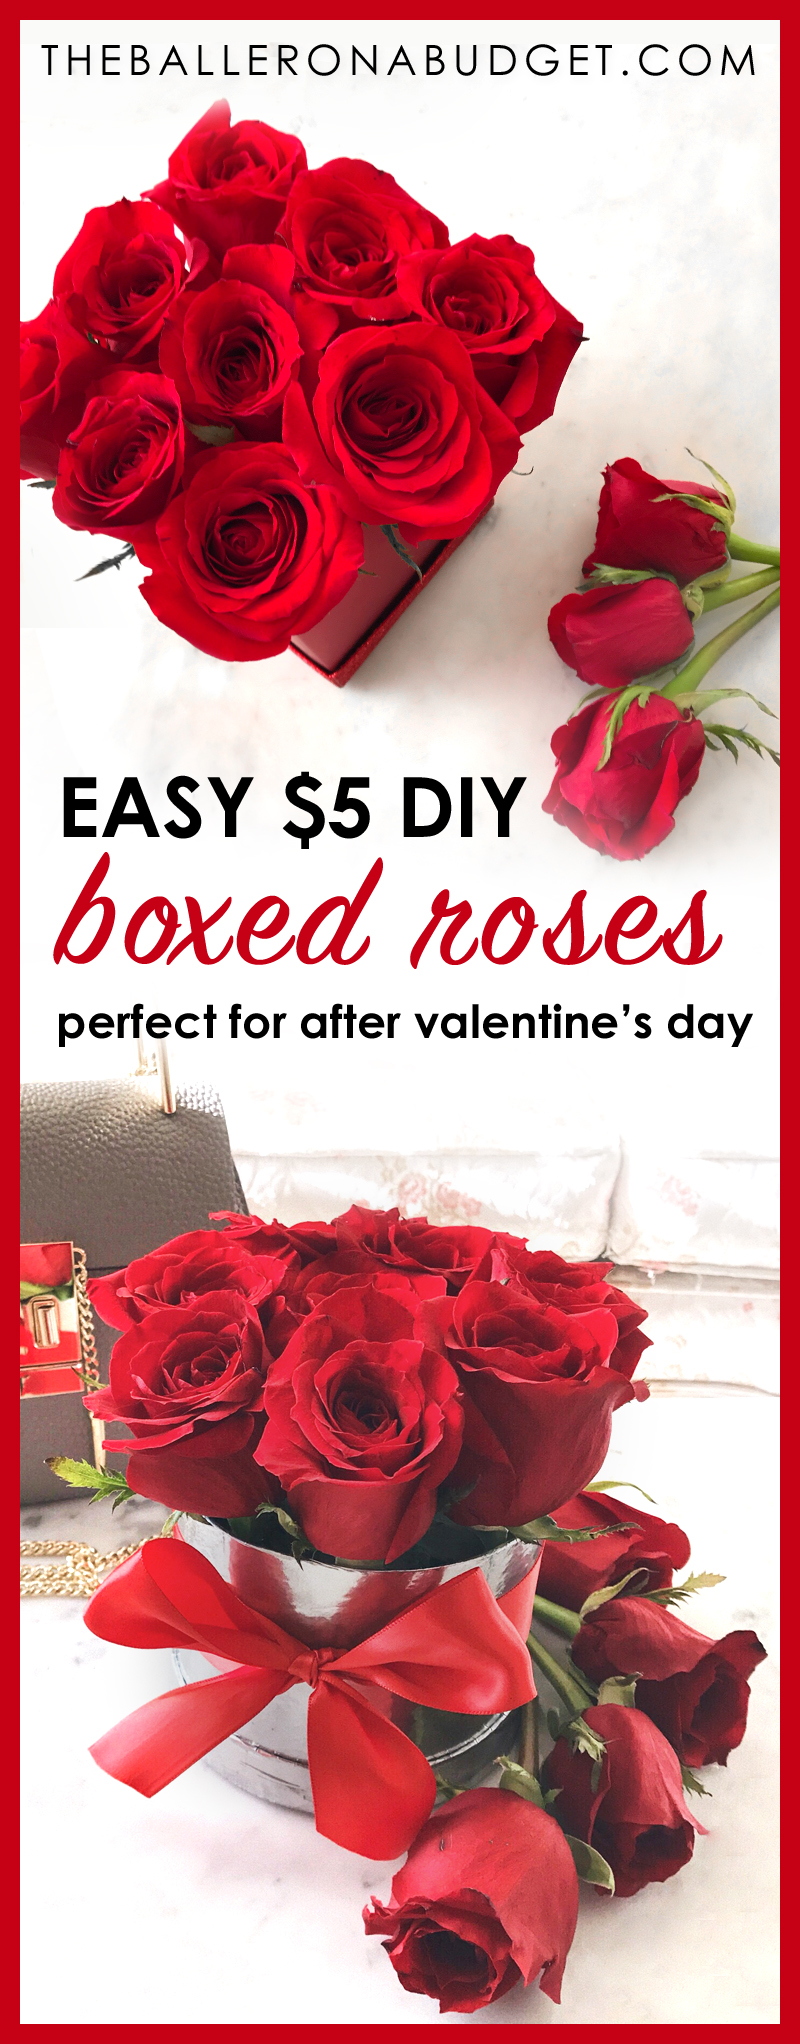 What do you do with your roses after Valentine's Day, your anniversary, birthday, or any other holiday? This cheap and fast DIY project makes it easy to refresh your wilting roses. Make these boxed roses for only $5 and in less than 15 minutes! - www.theballeronabudget.com